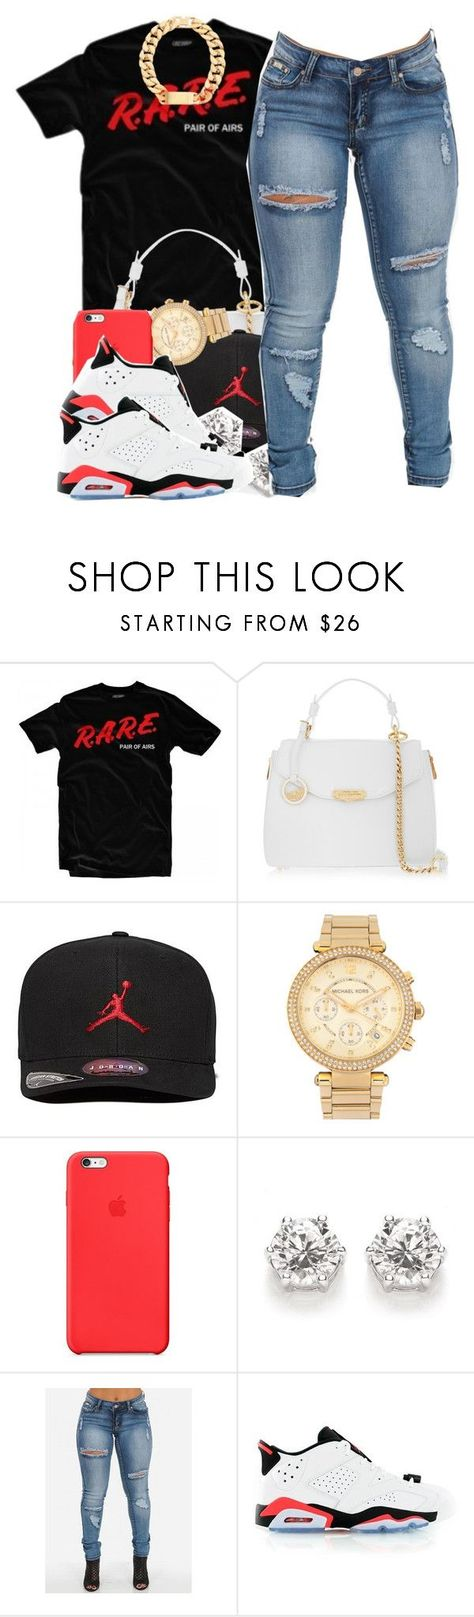 """""""New Year, Same Style"""" by polyvoreitems5 ❤ liked on Polyvore featuring Versace, Jordan Brand, Michael Kors, Apple and Retrò"""